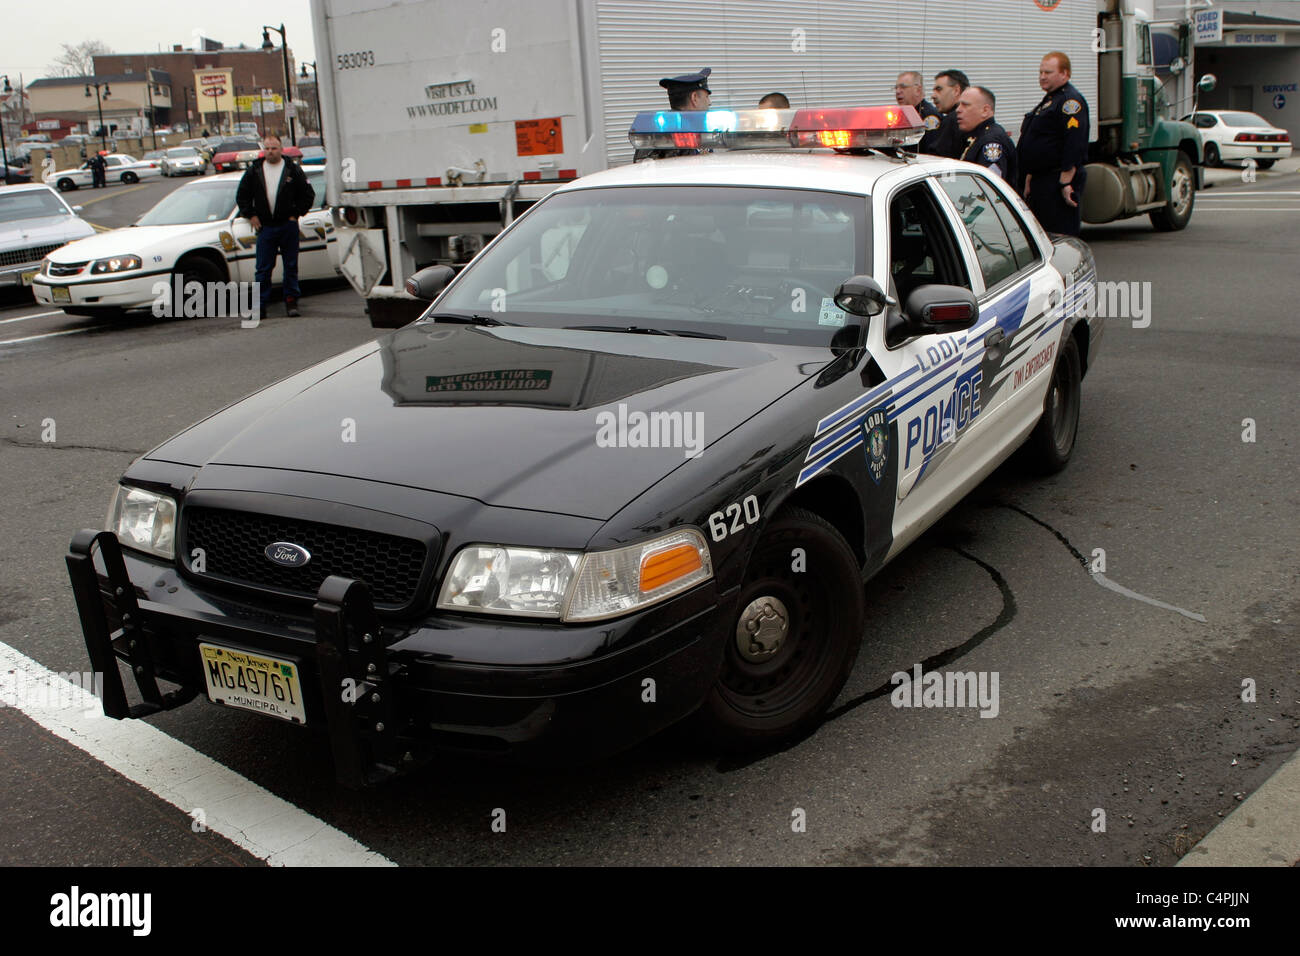 Ford crown victoria patrol car lodi police department new jersey stock image